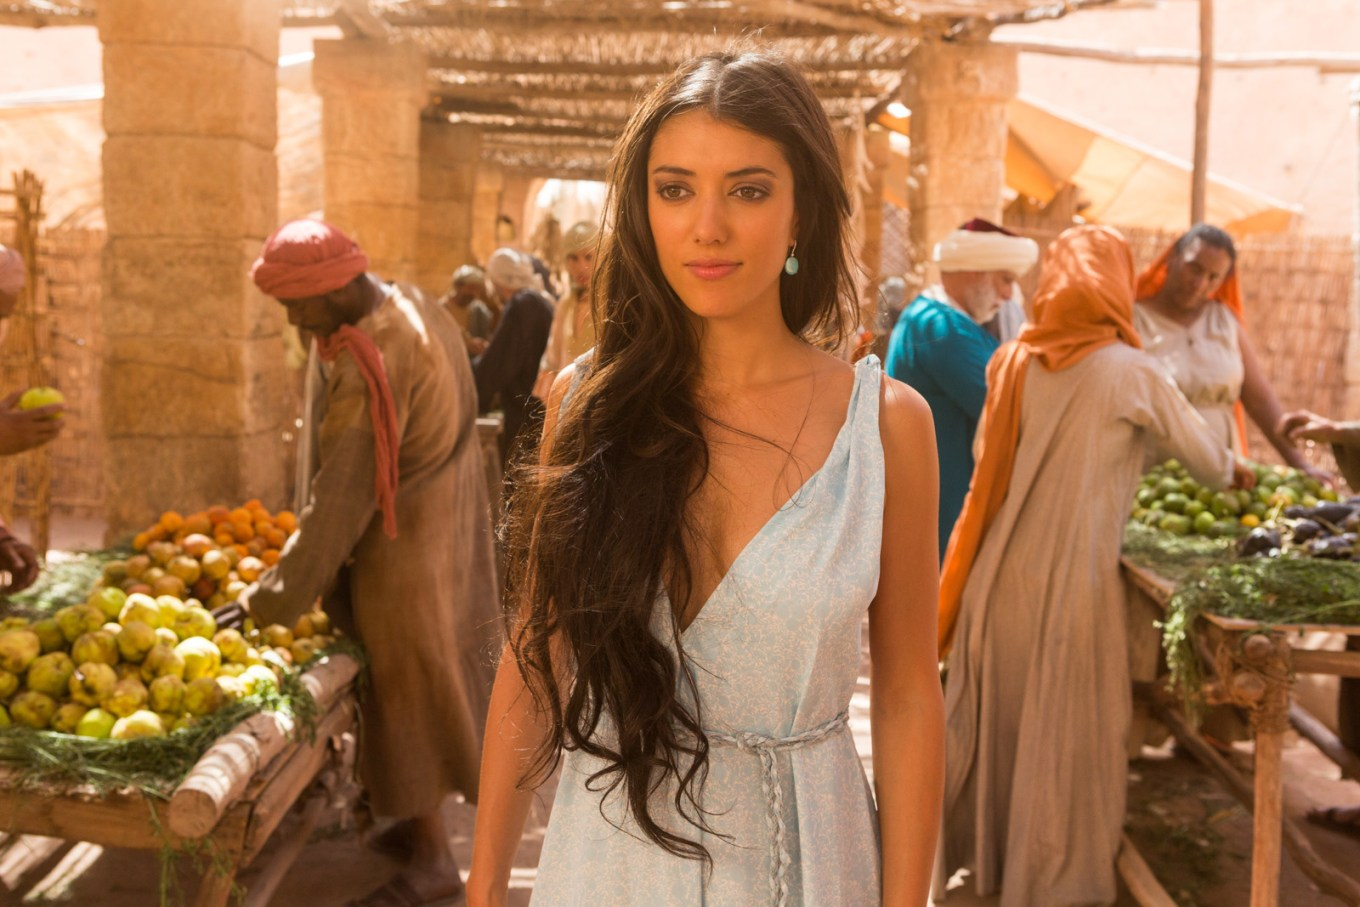 vanessa guide in THE NEW ADVENTURES OF ALADDIN